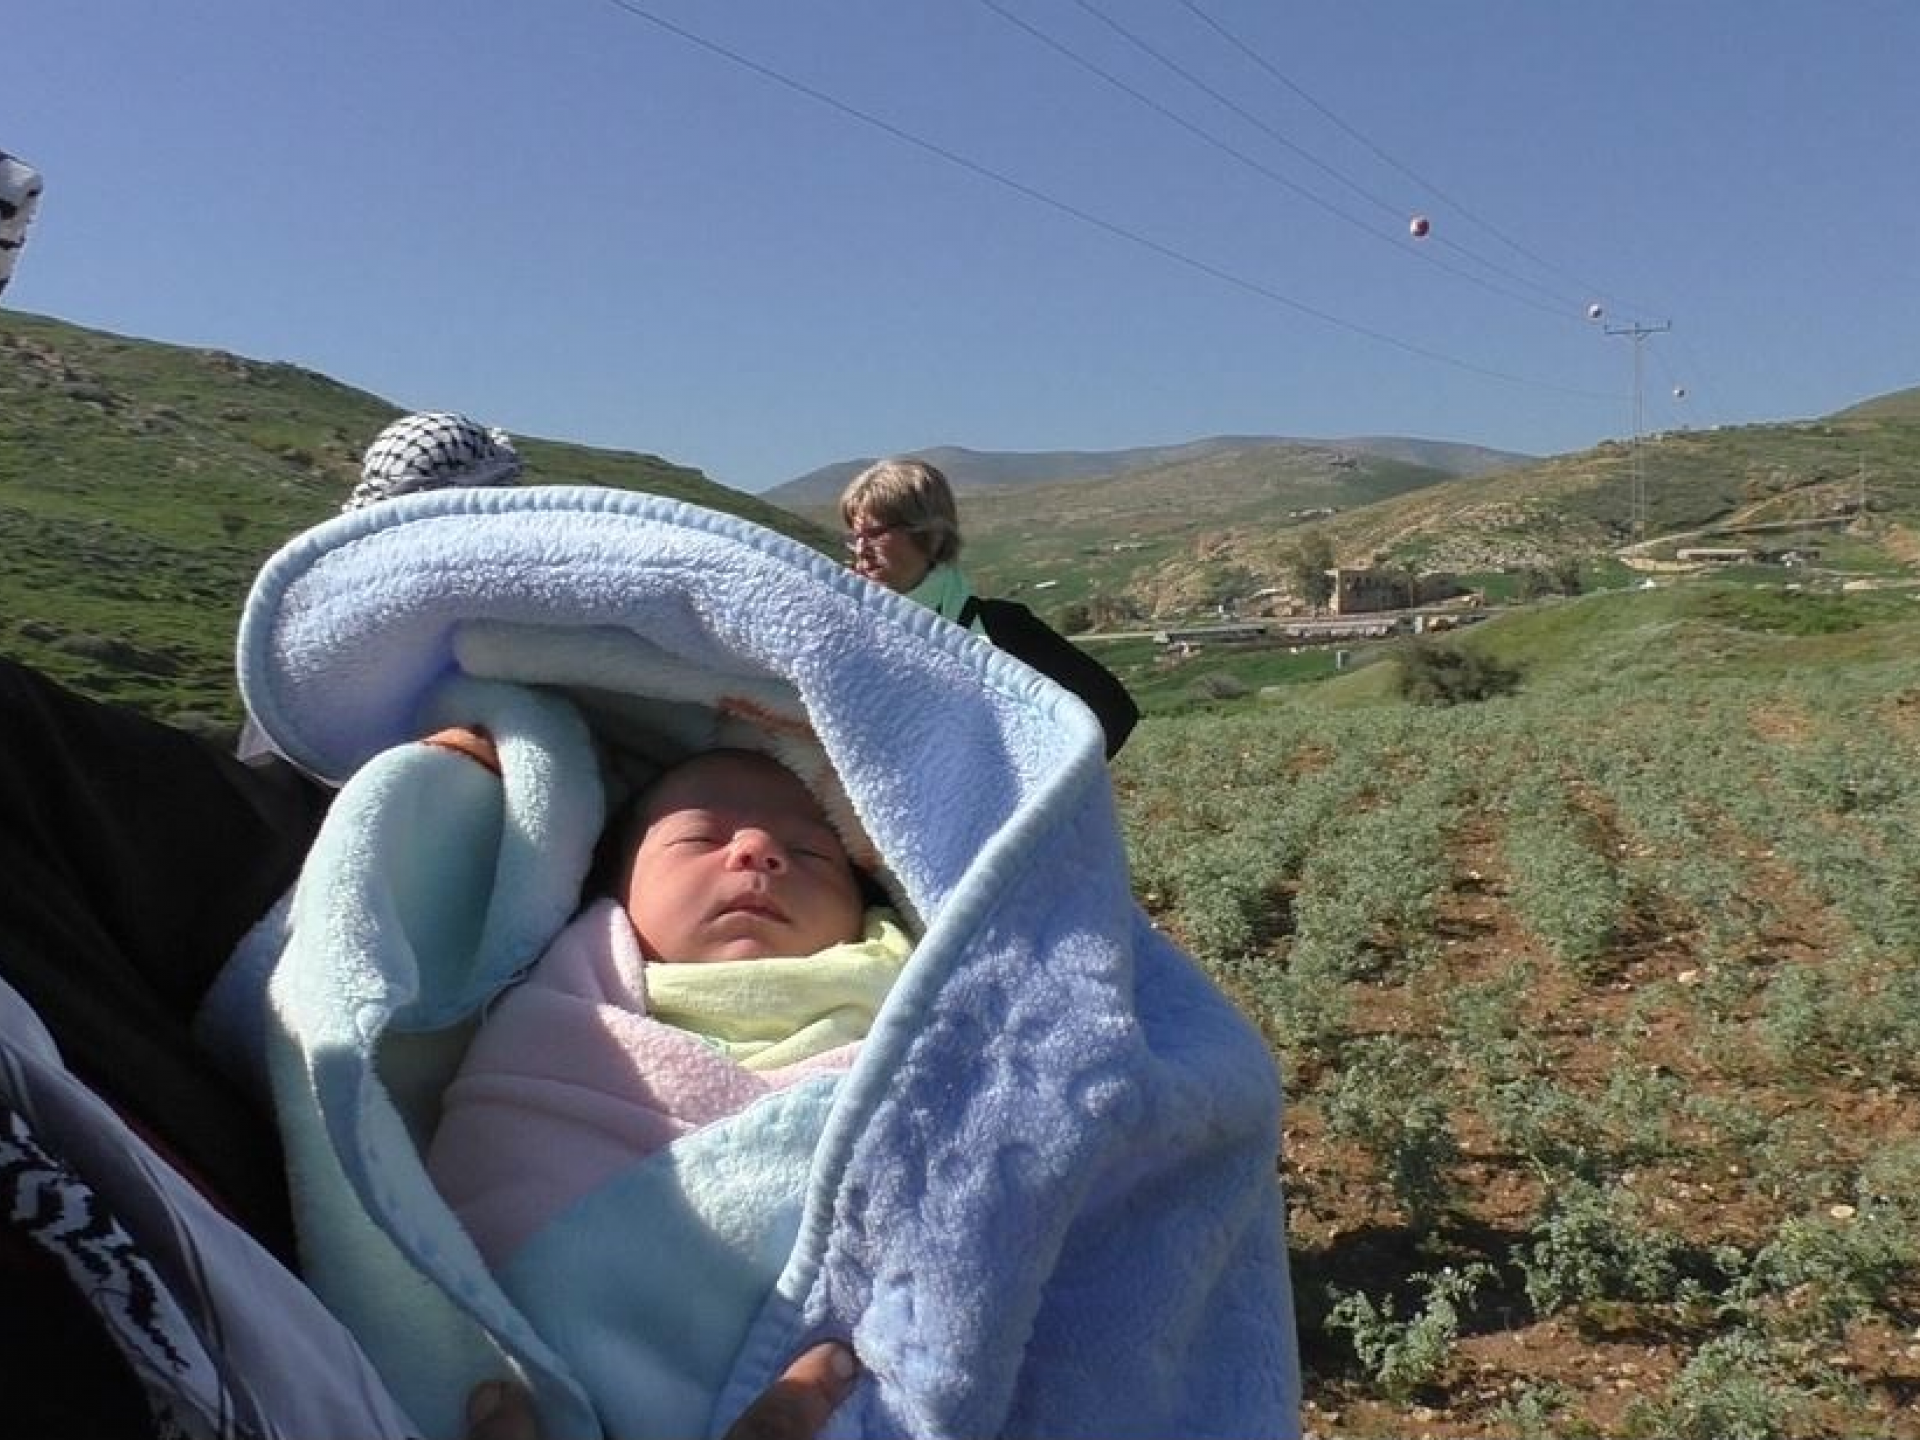 The infant was evacuated with her family